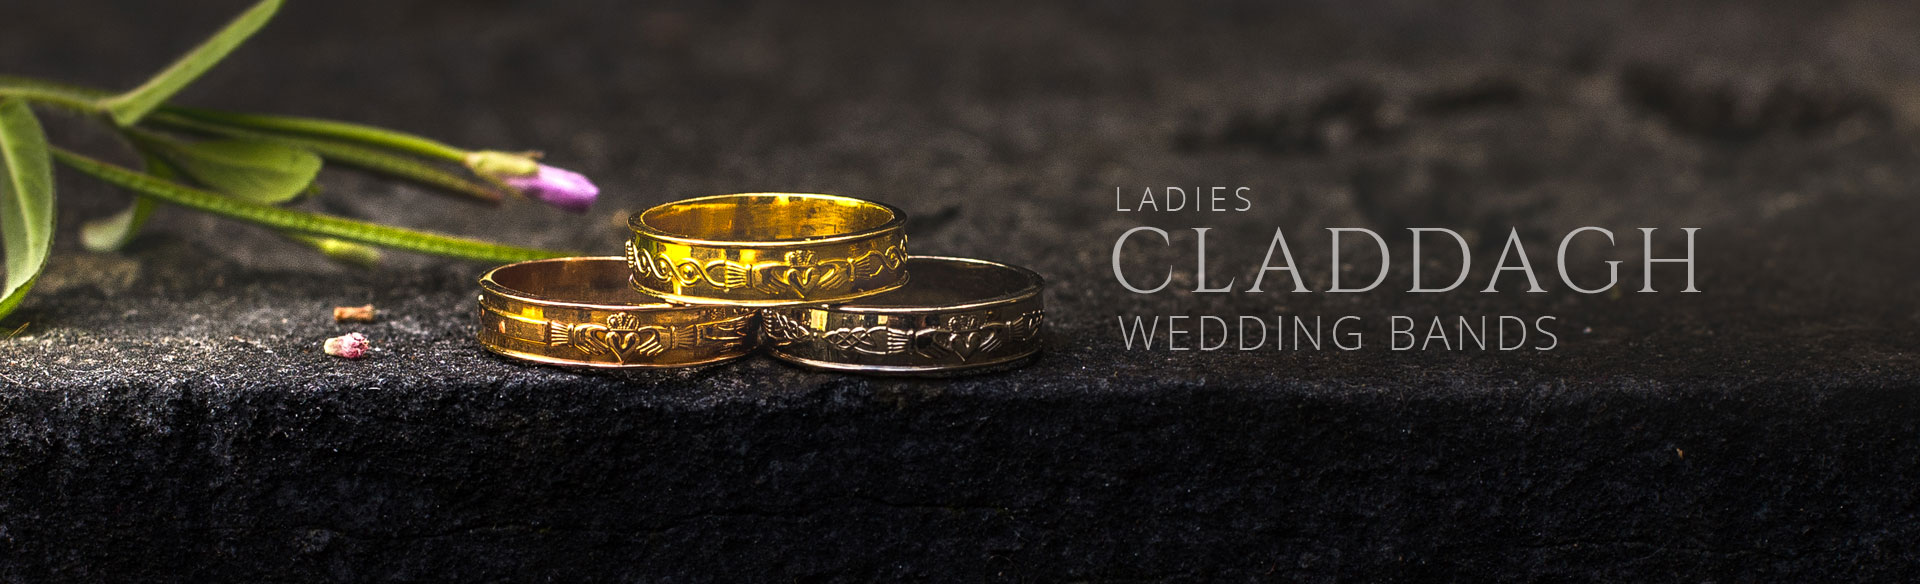 Ladies Claddagh Wedding Bands